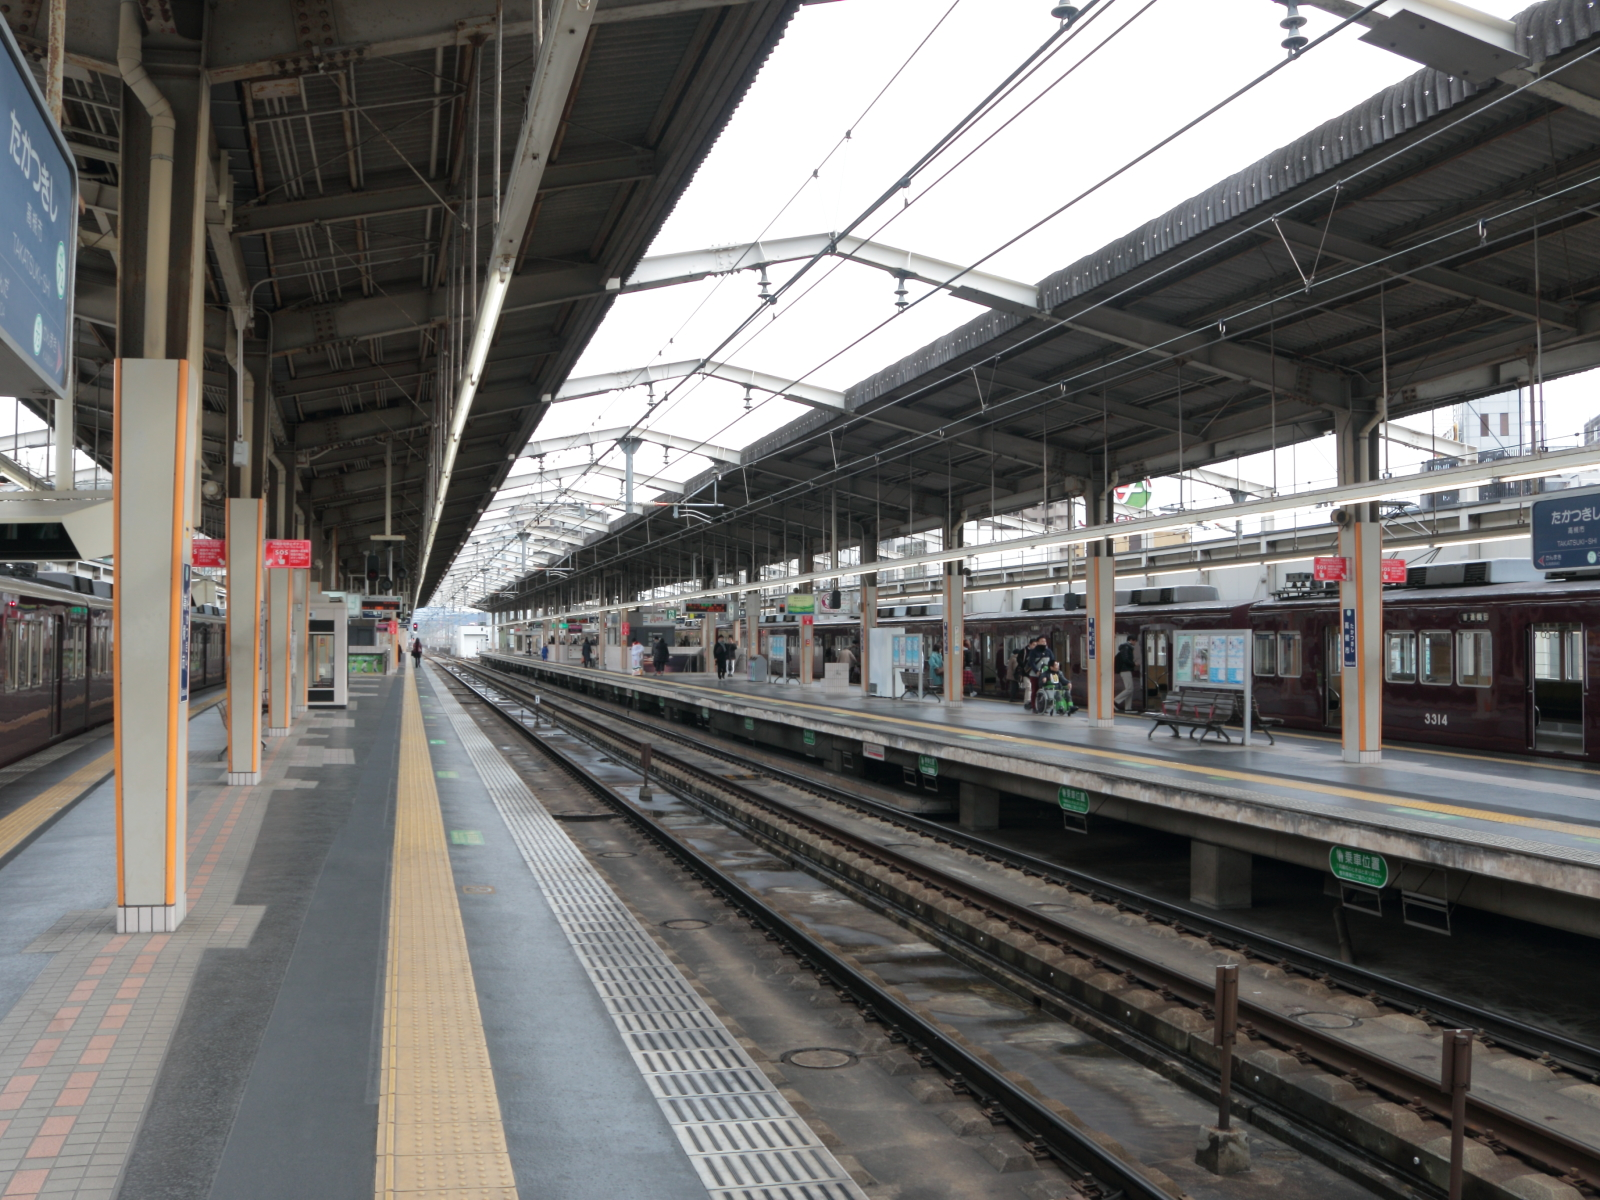 https://upload.wikimedia.org/wikipedia/commons/0/0c/Takatsuki-shi_Station_%2801%29_IMG_3774r_20160130.JPG